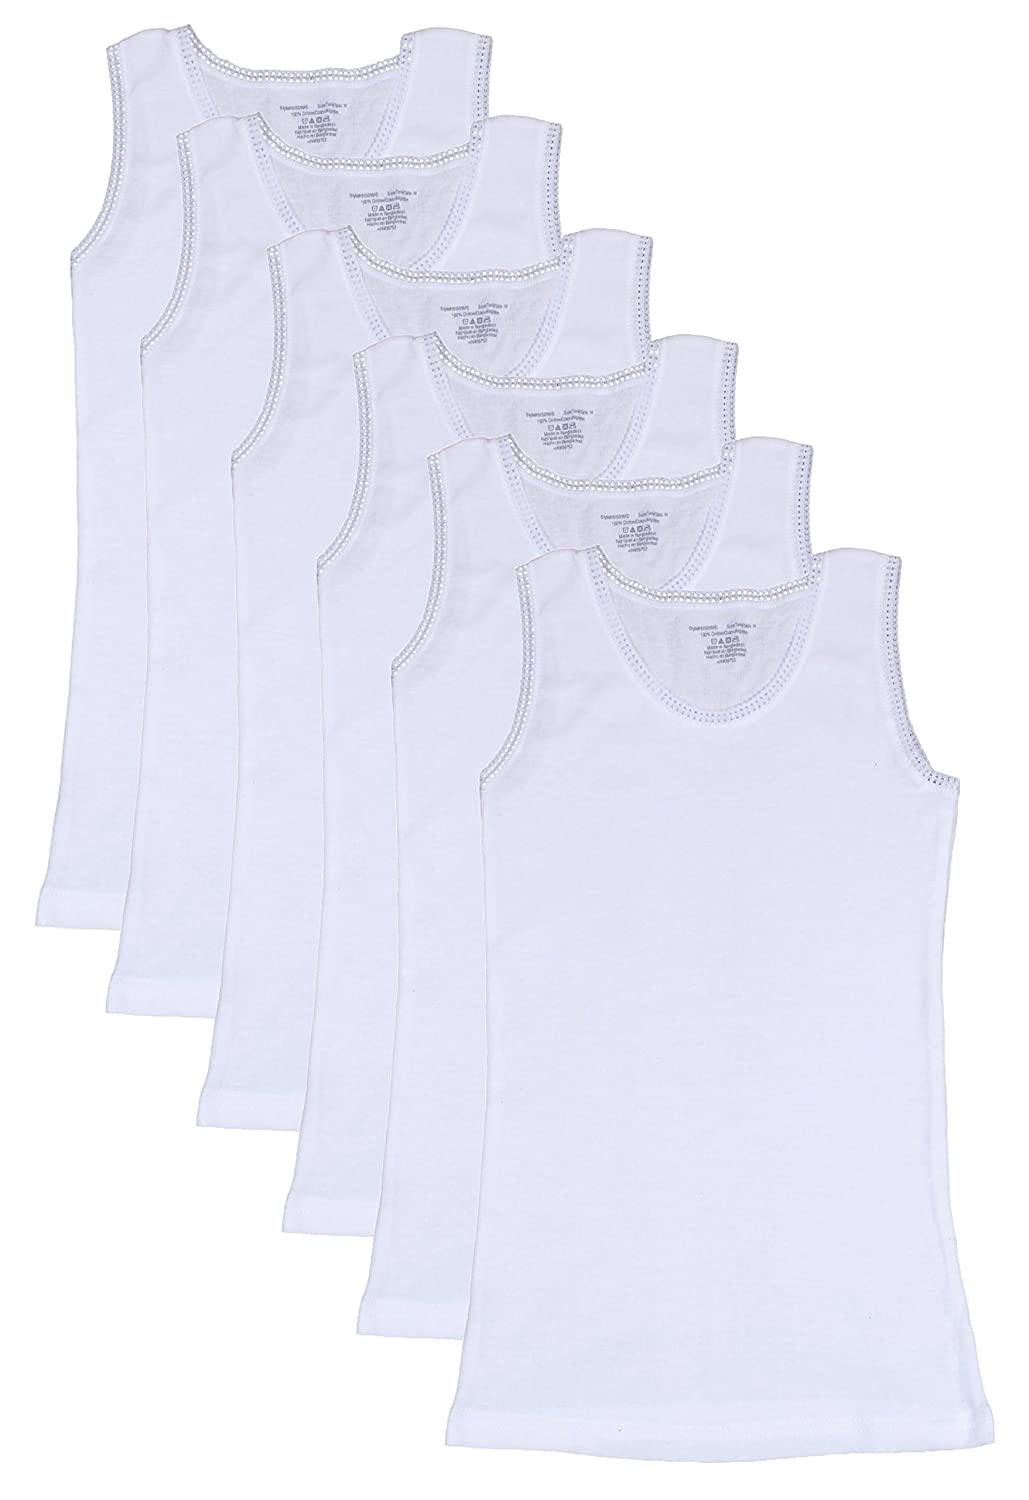 Sweet & Sassy Girls Undershirt Tank Top with Lace Trim (Pack of 6) White Small / 4-6 (Pack of 6)'